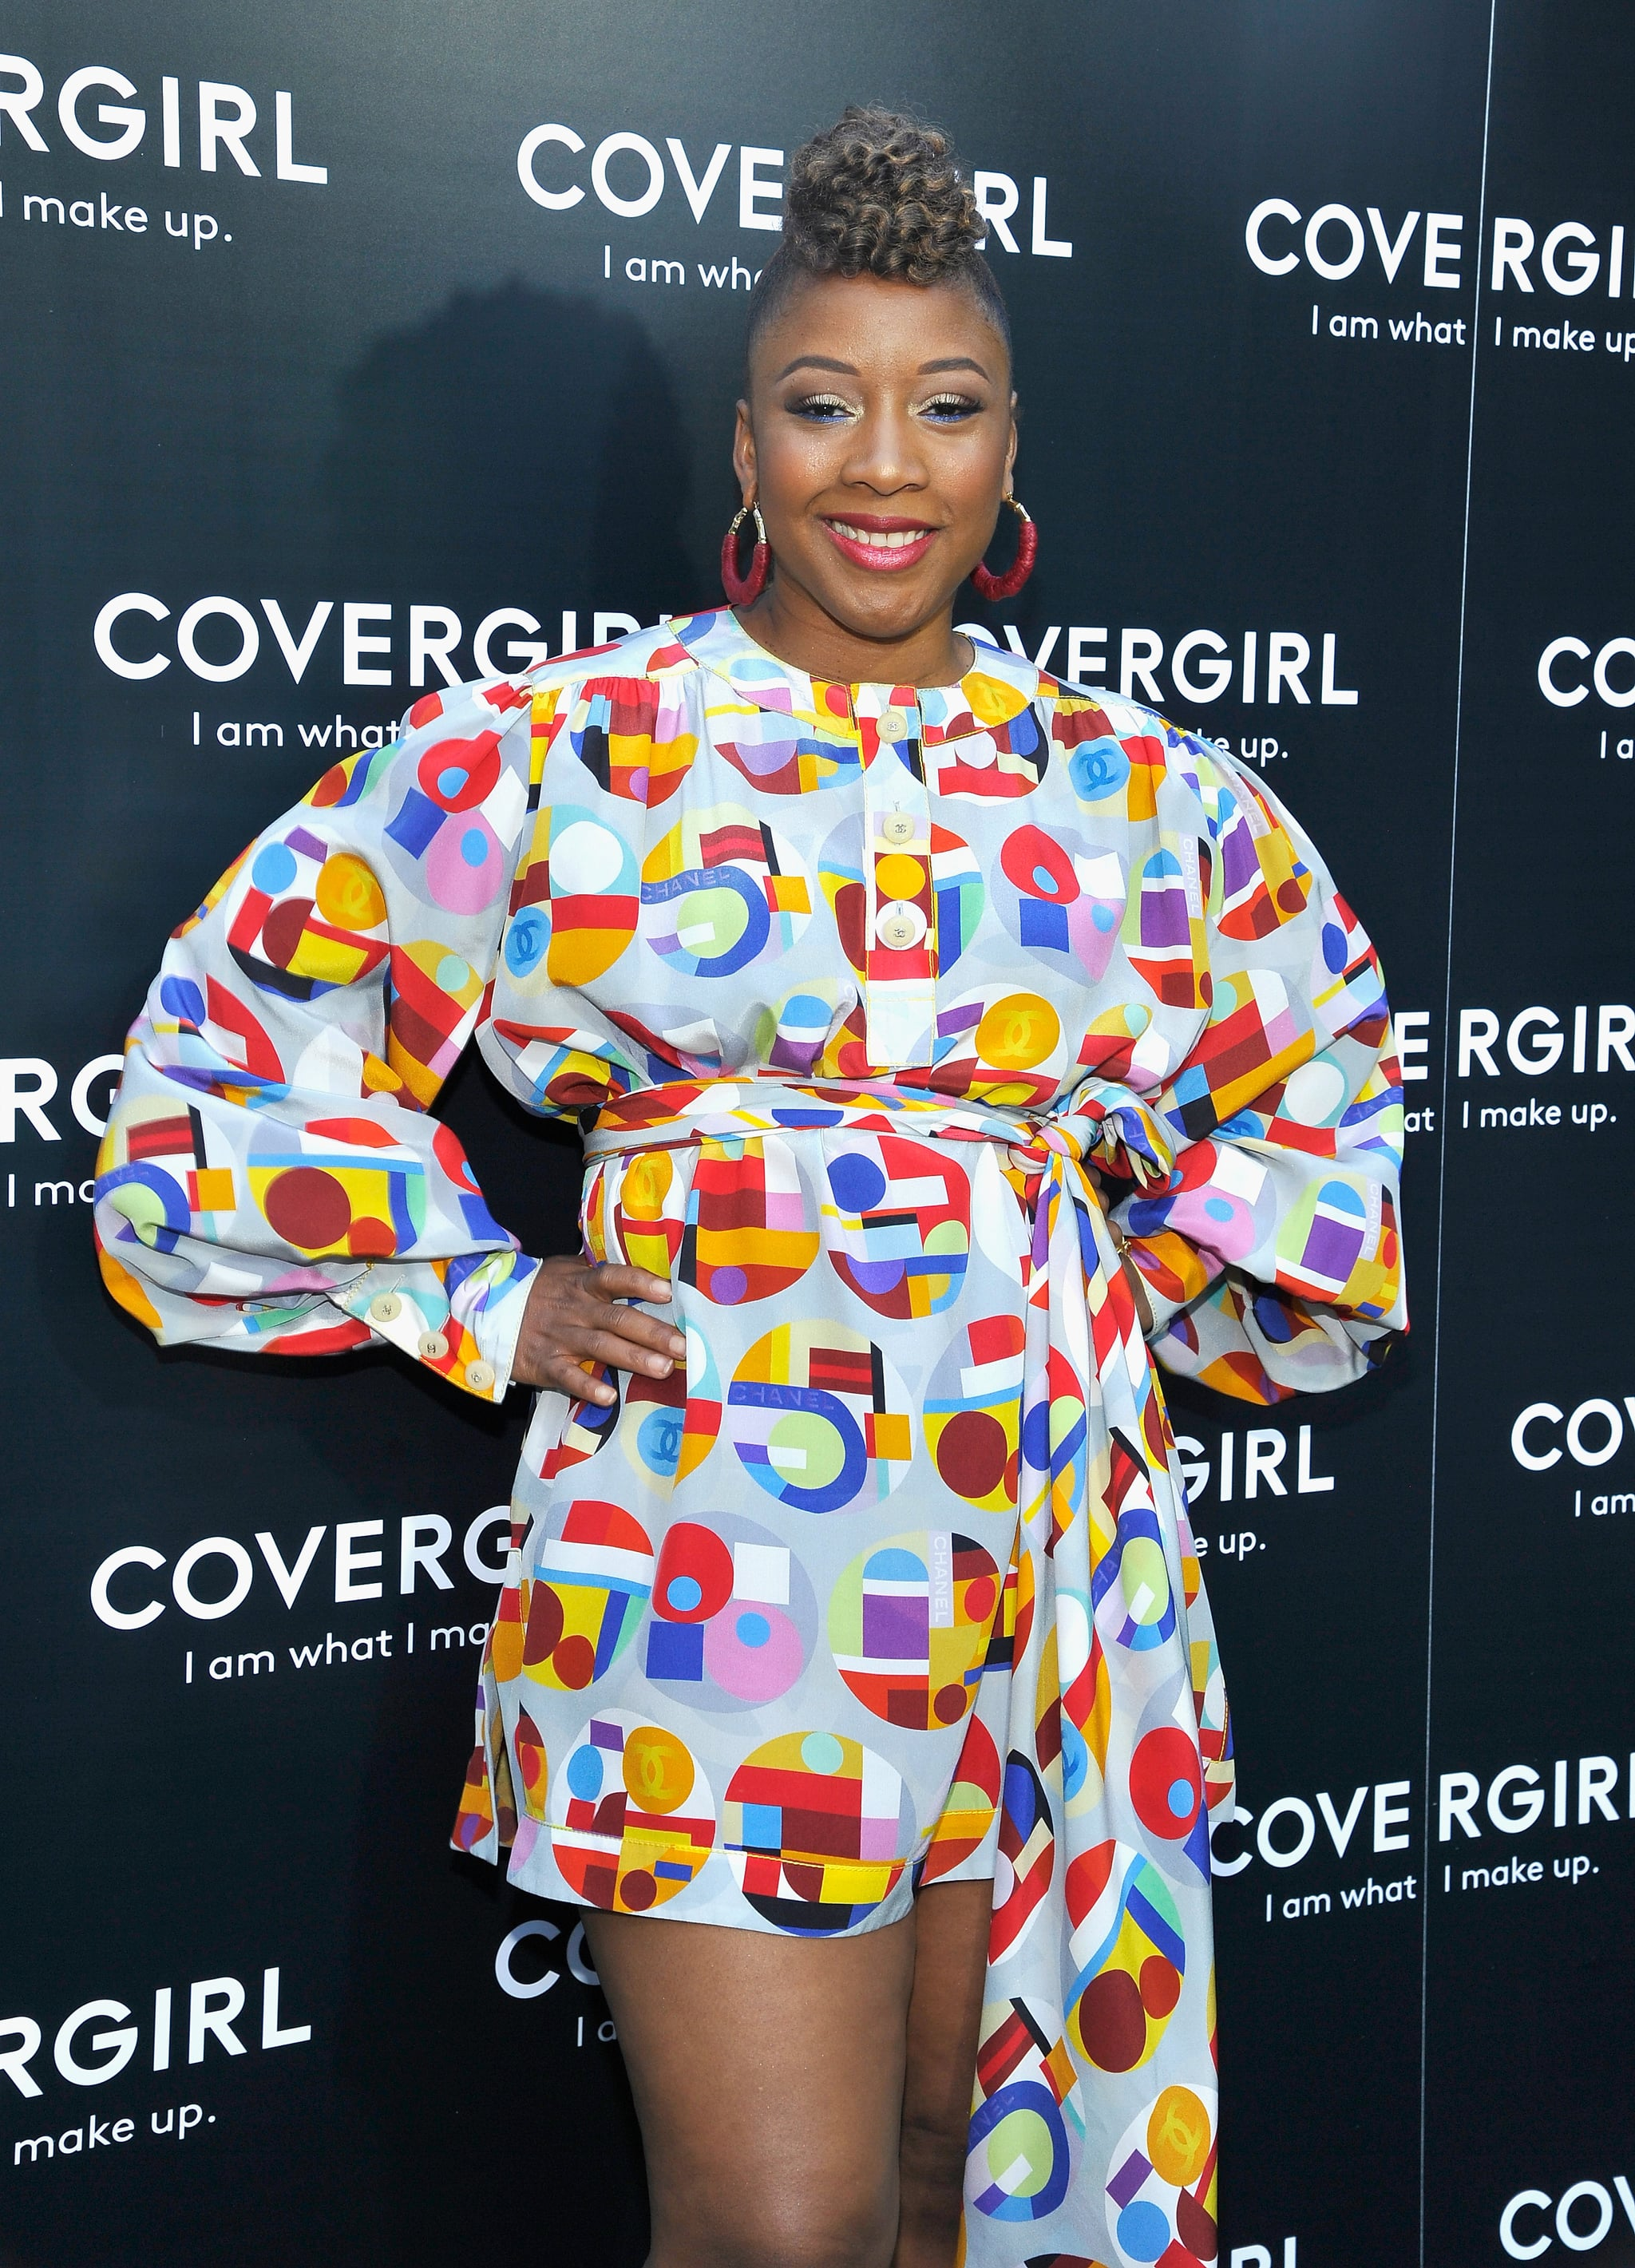 LOS ANGELES, CA - MAY 08:  Ukonwa Ojo attends a COVERGIRL sneak peek to their Fall 2018 Makeup line with COVERGIRL'S SVP, Ukonwa Ojo on May 8, 2018 in Los Angeles, California.  (Photo by John Sciulli/Getty Images for COVERGIRL) *** Local Caption *** Ukonwa Ojo